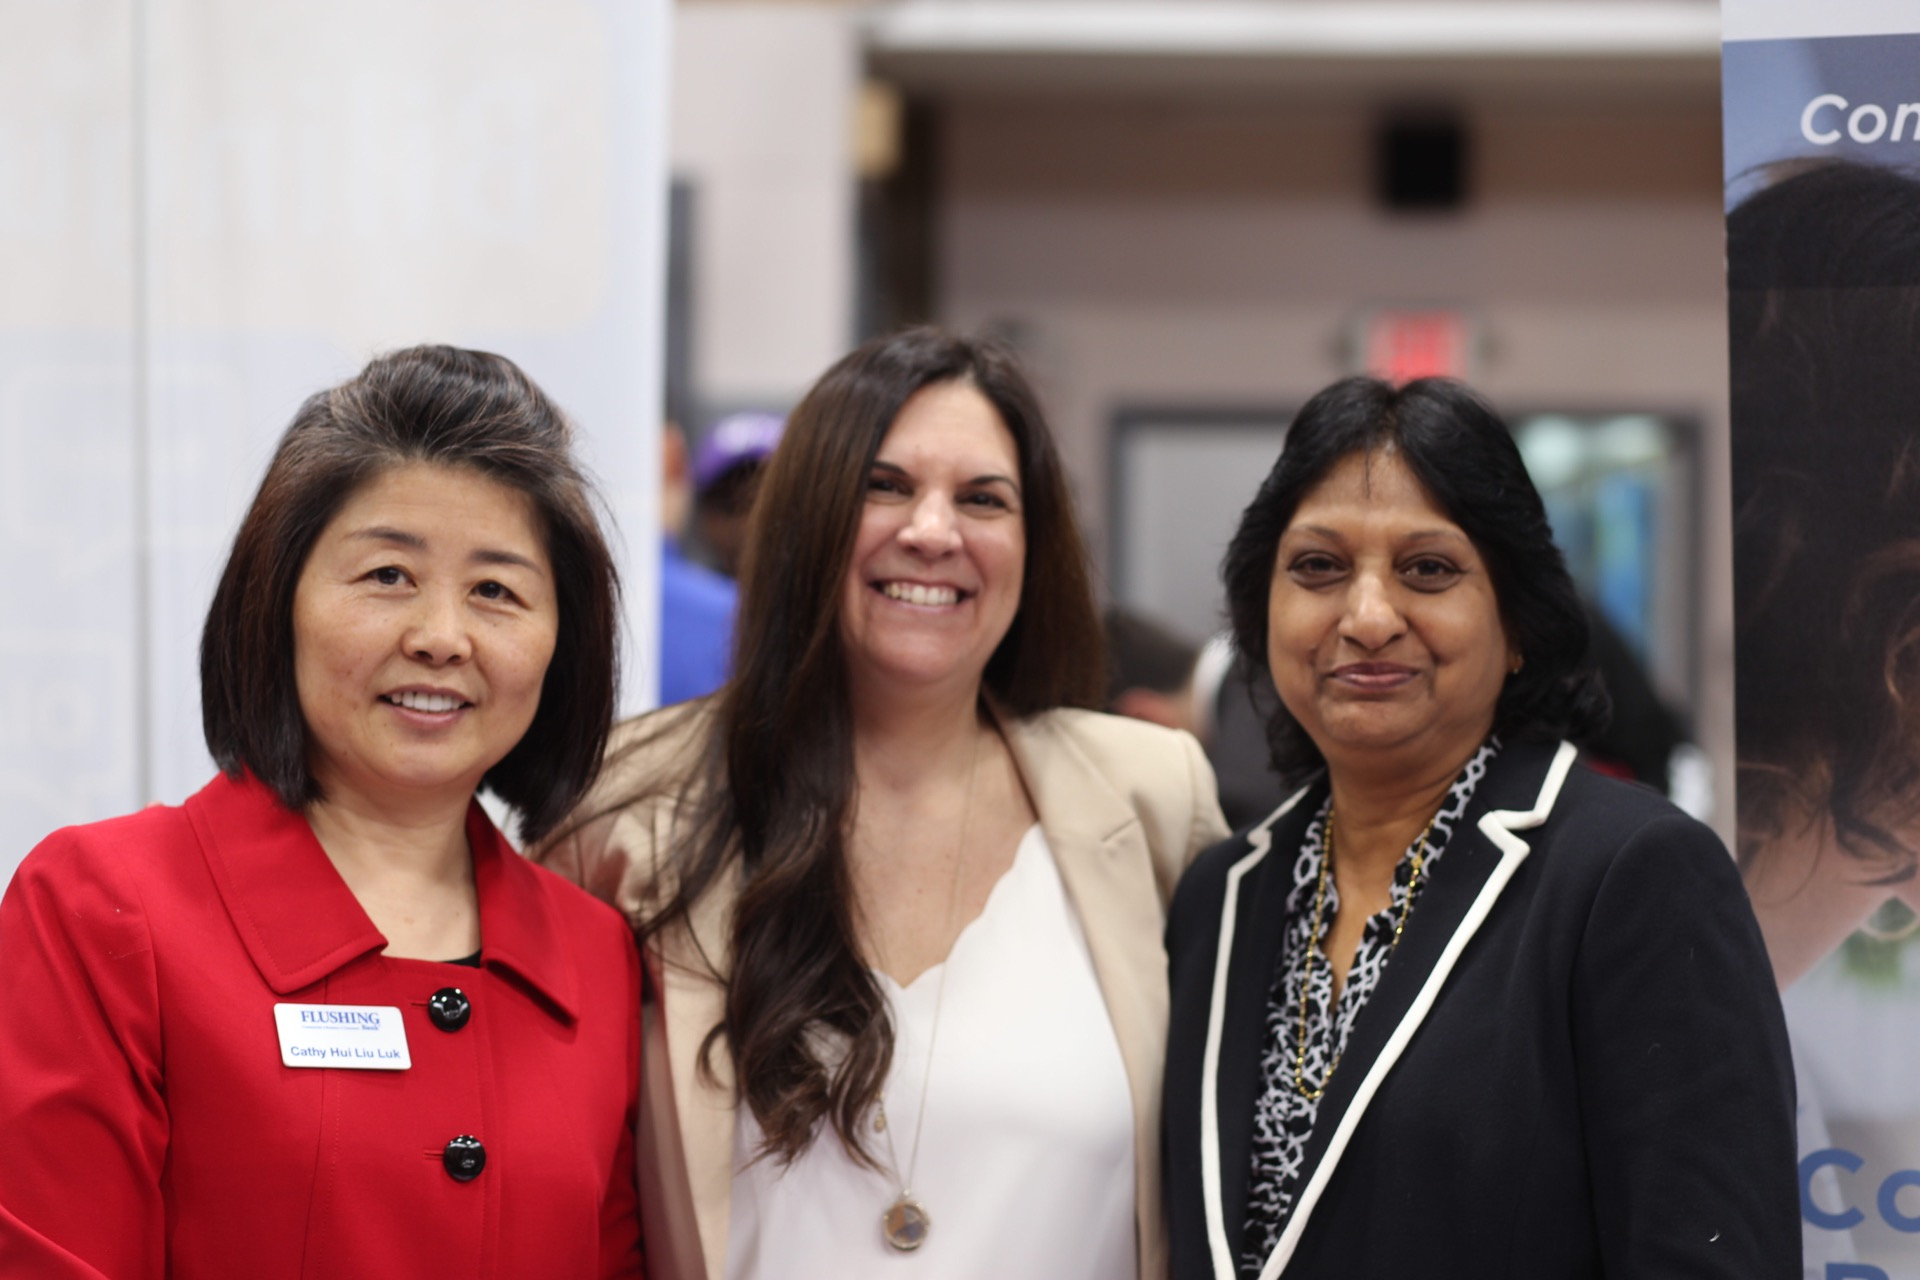 Commonpoint Queens Seeks Partnerships with Local Businesses to help build NYC Workforce